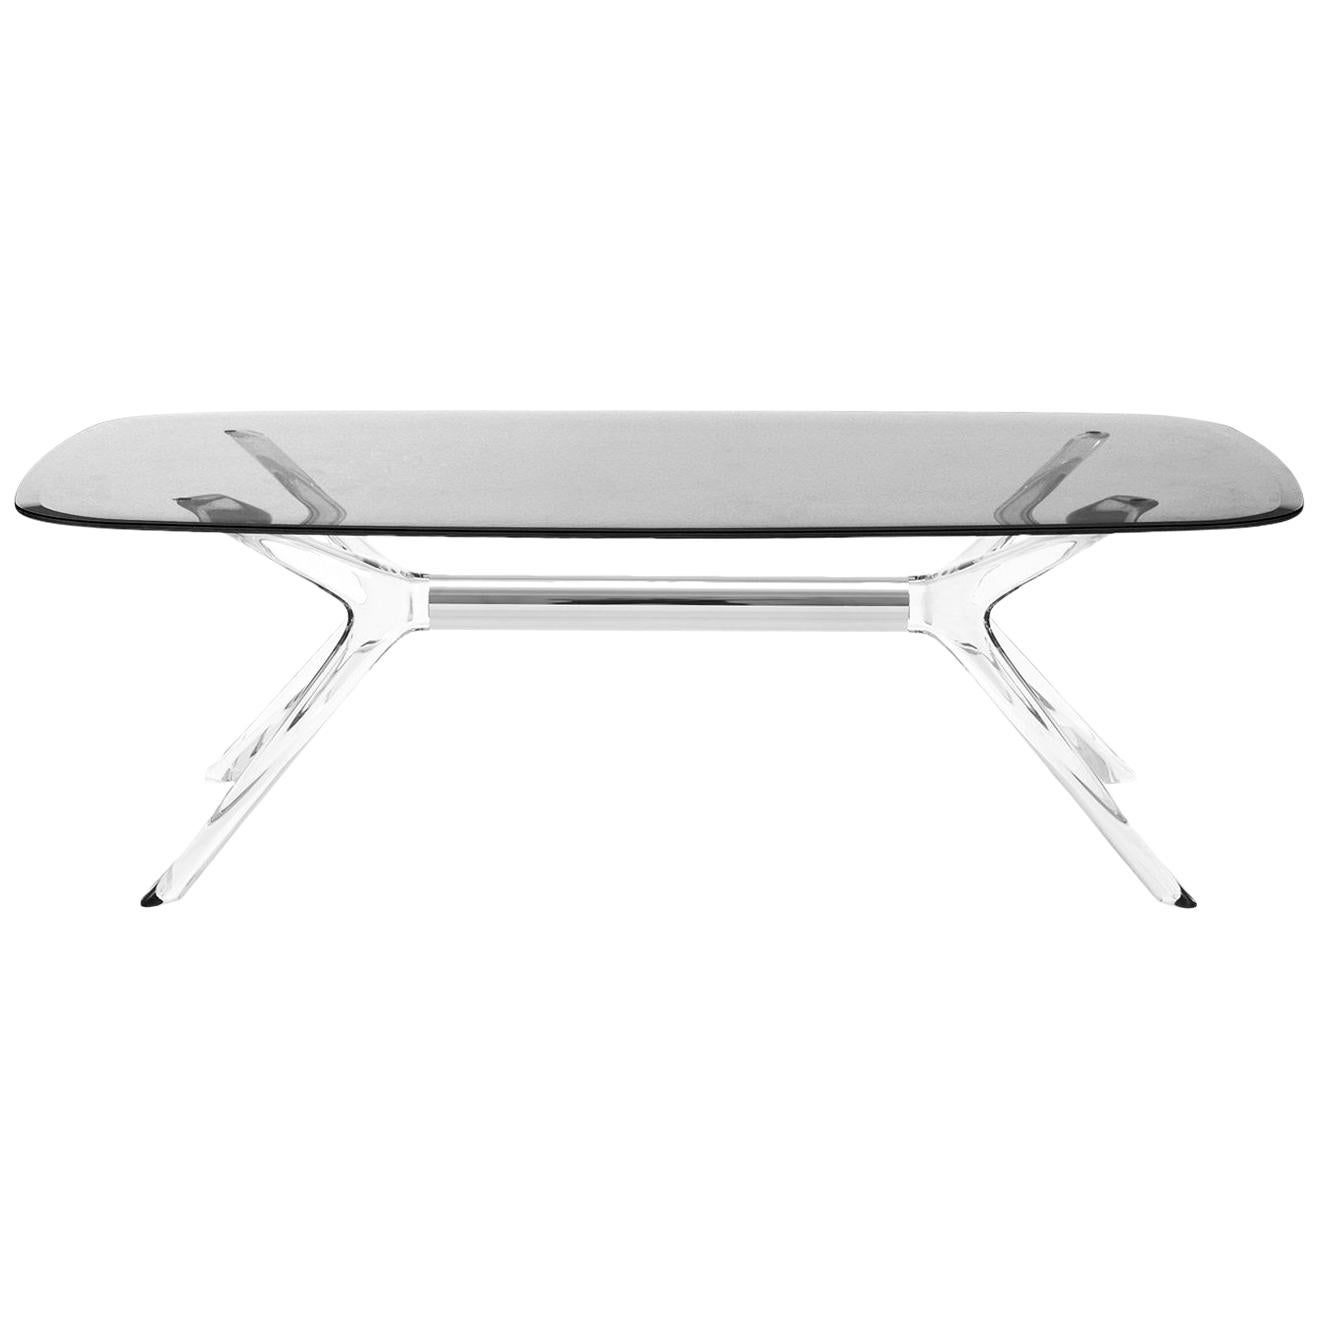 Kartell Blast Rectangle Table in Chrome with Smoke Top by Philippe Starck